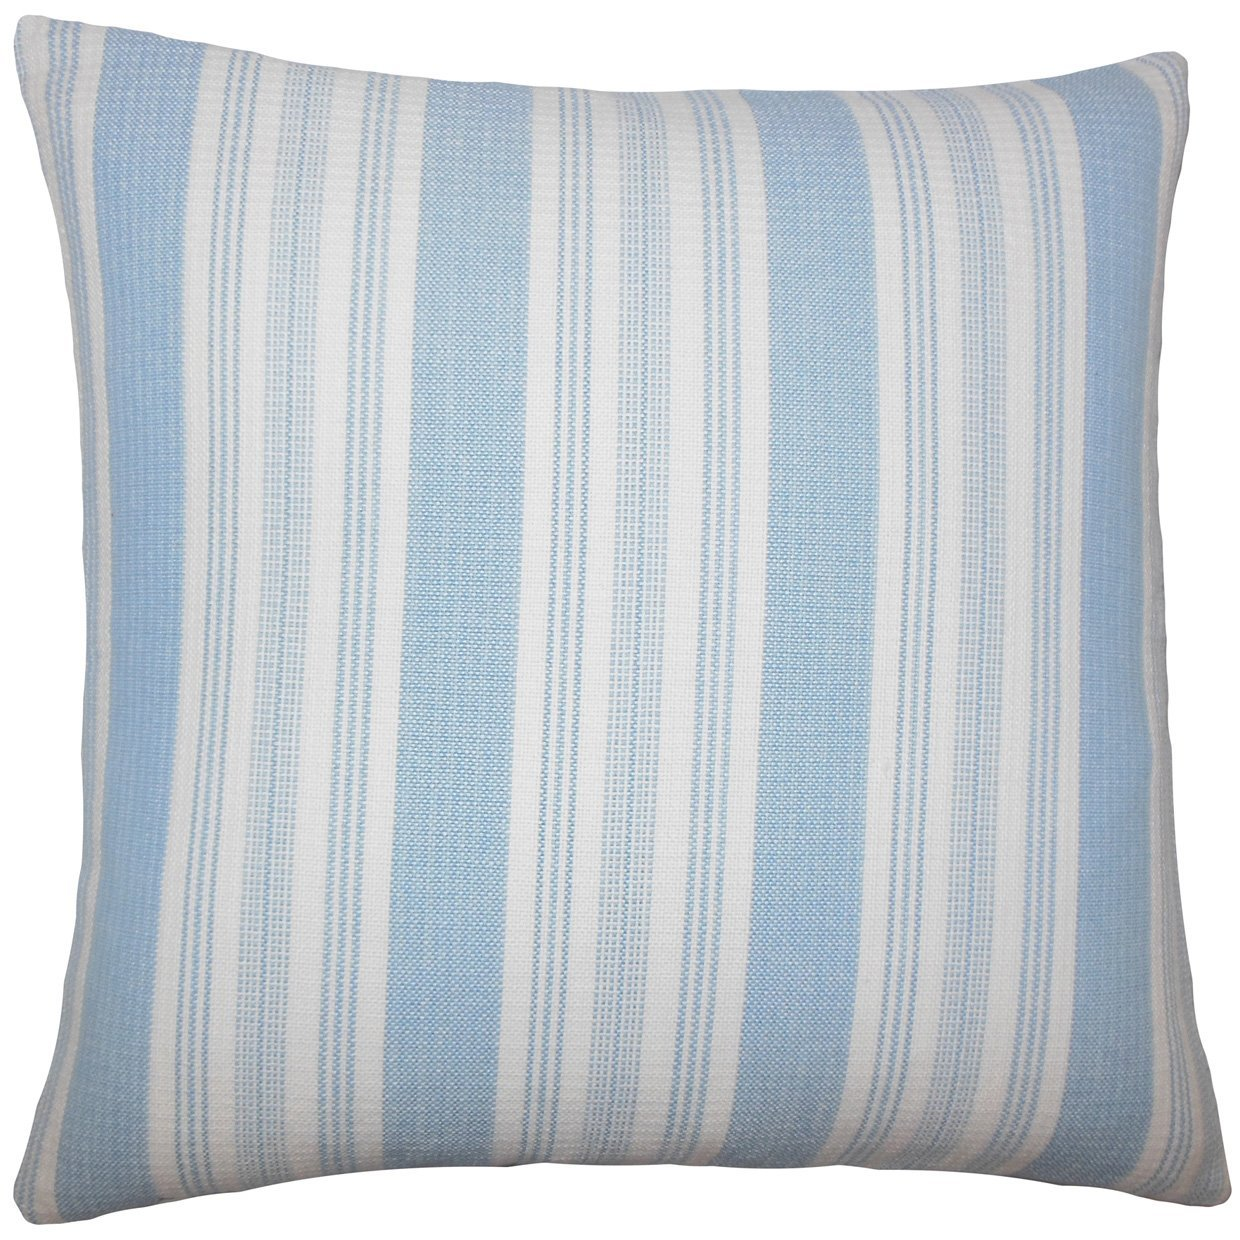 The Pillow Collection KING-D-32805-CHAMBRAY-C100 Reiki Striped Bedding Sham King//20 x 36 Chambray